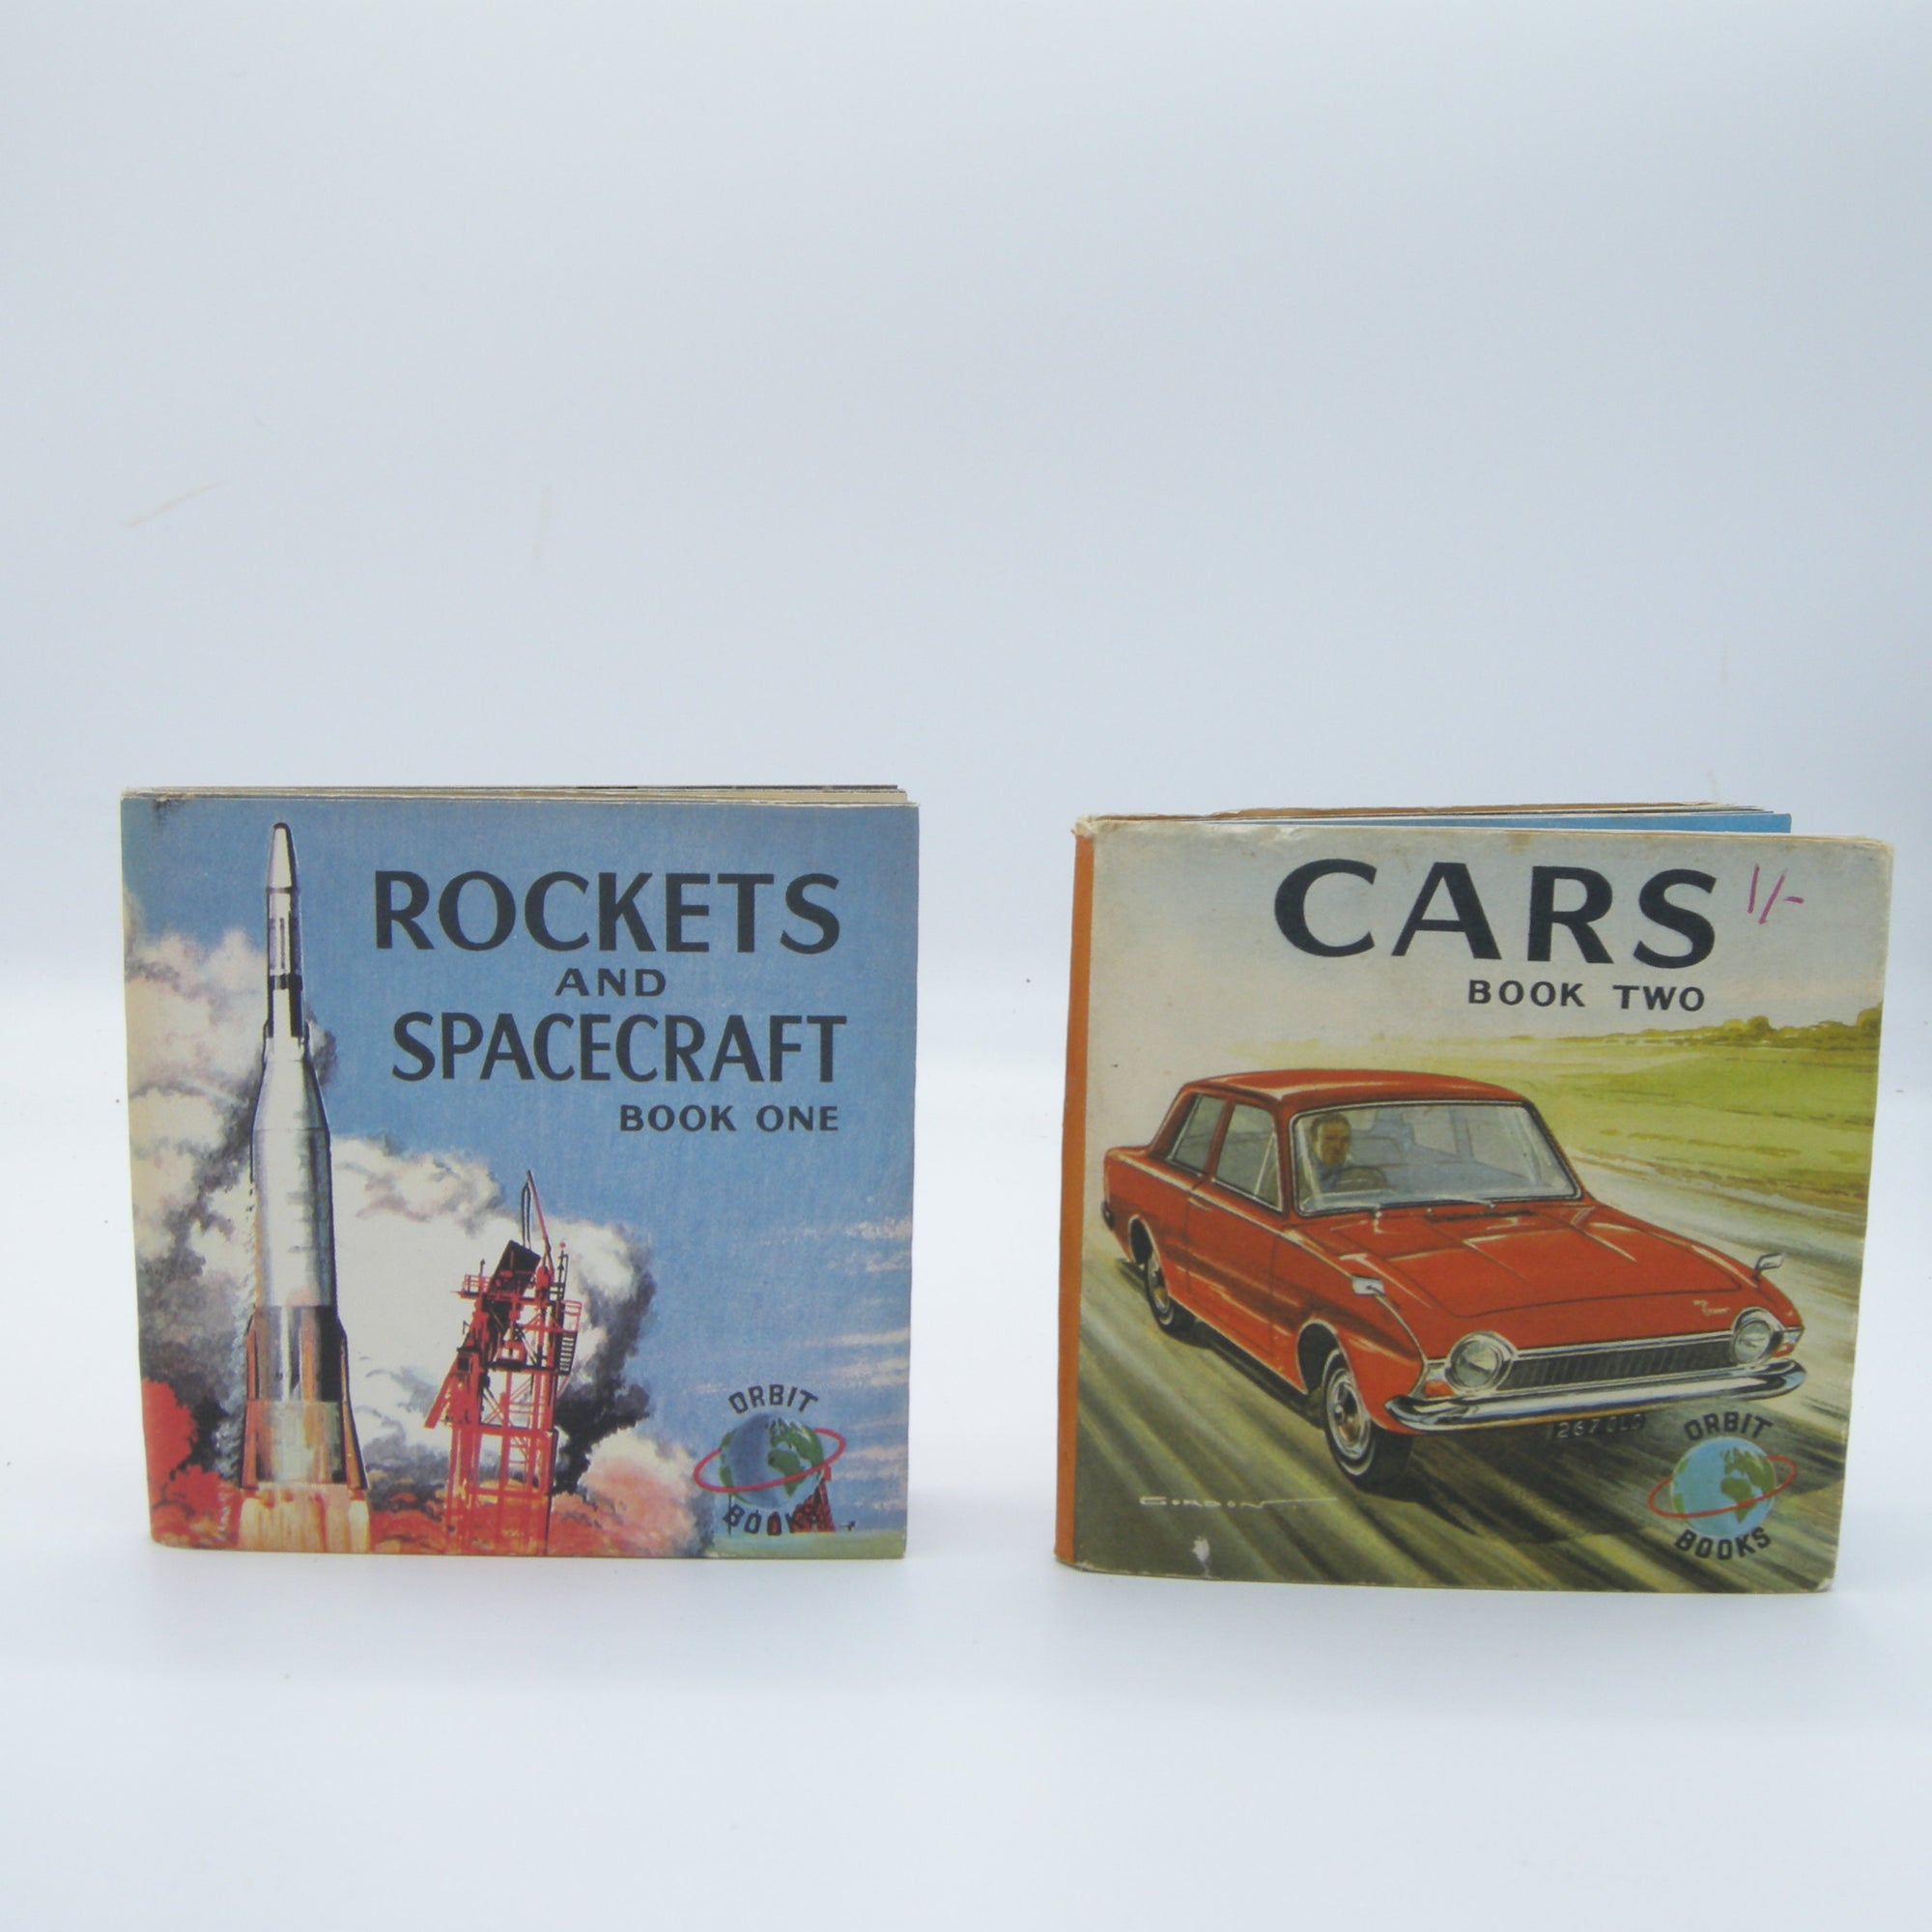 Vintage Orbit Books Collection: Cars and Rockets